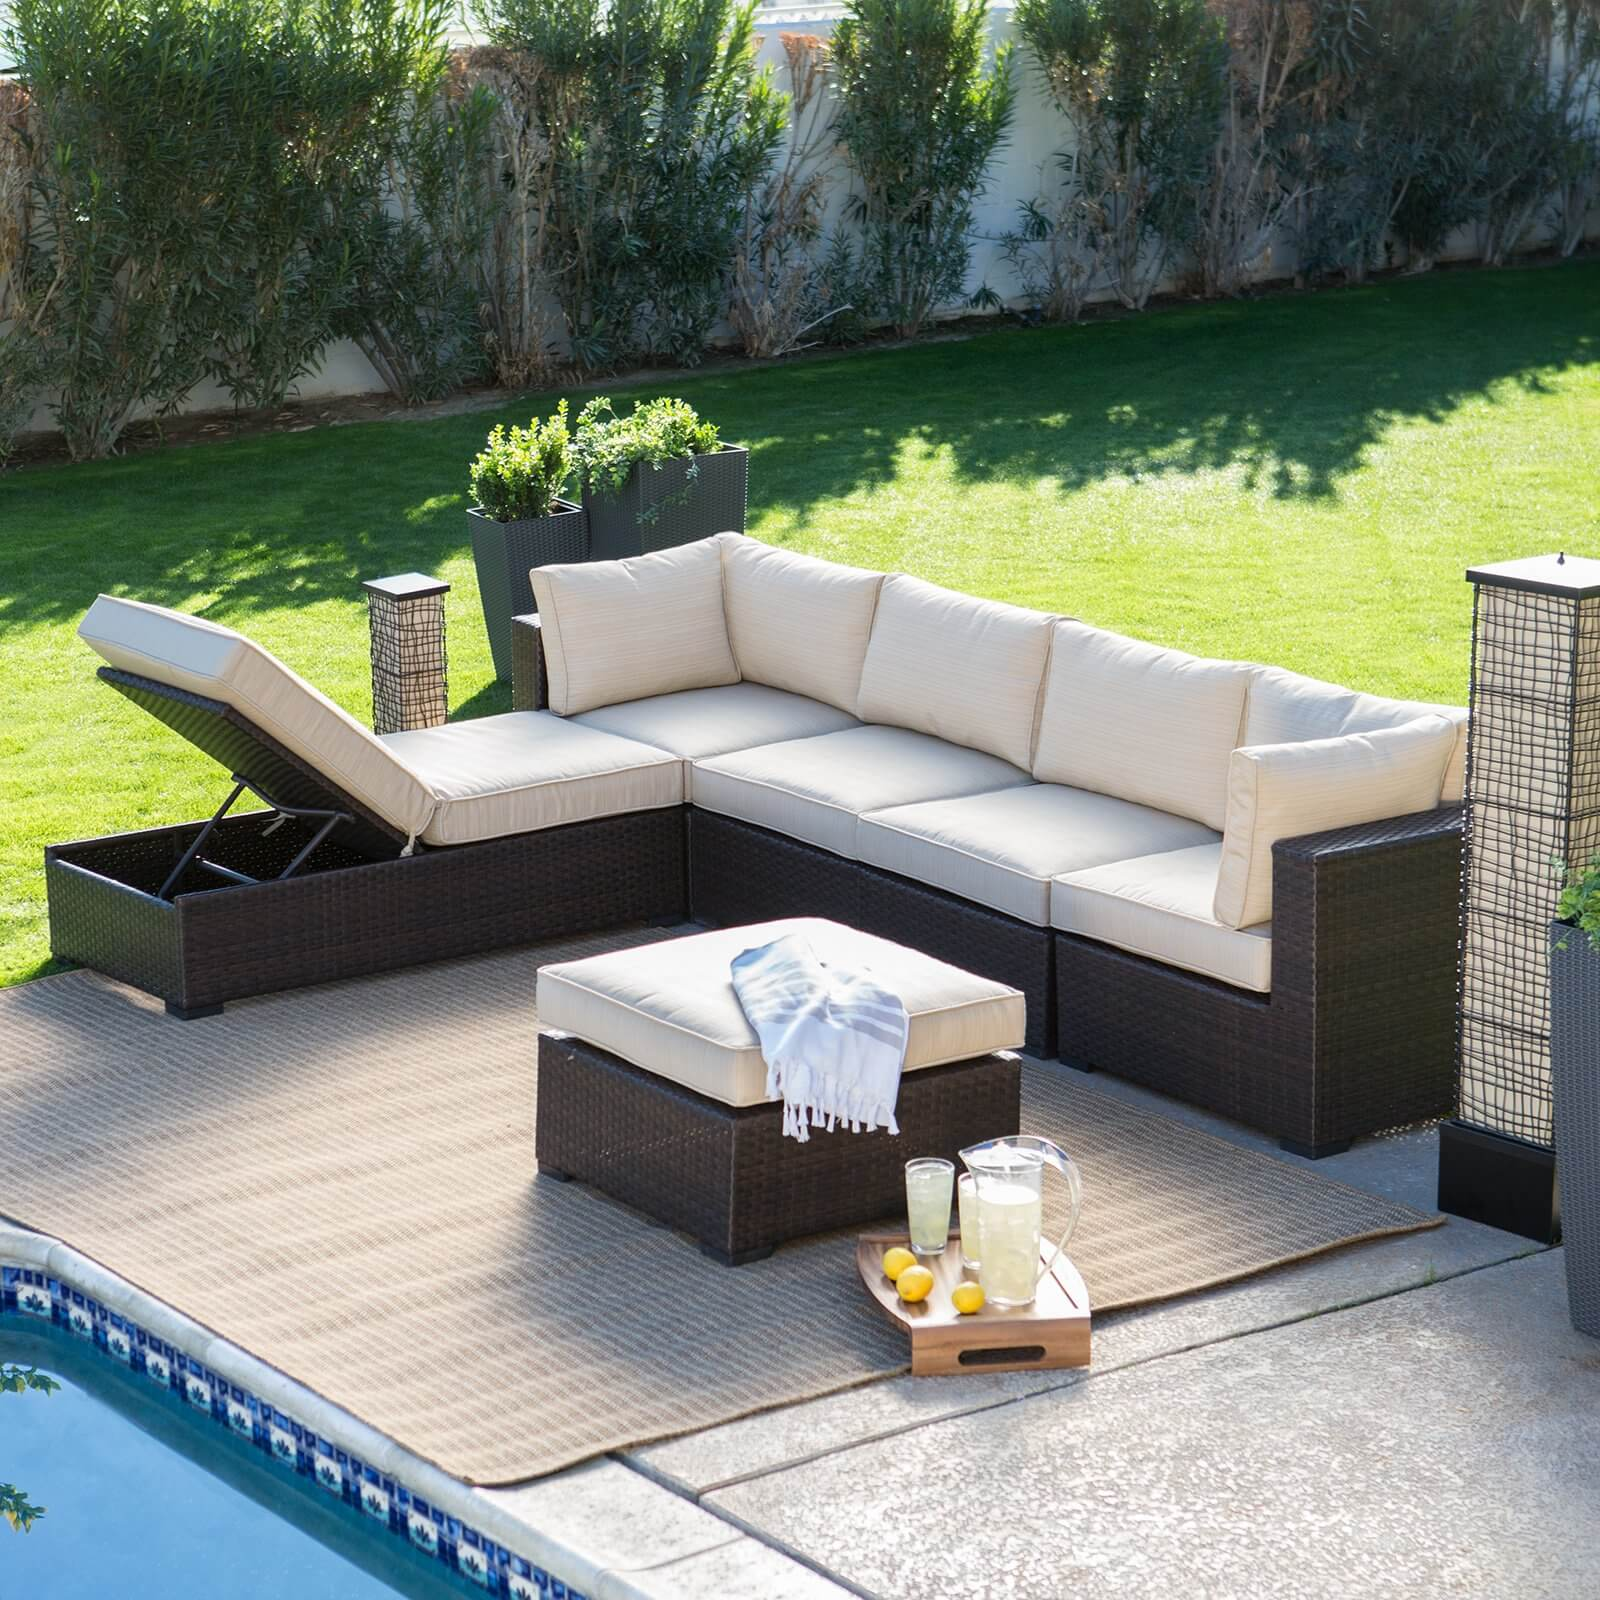 lengthy patio sectional features standard sofa shape plus chaise lounge section with movable backrest